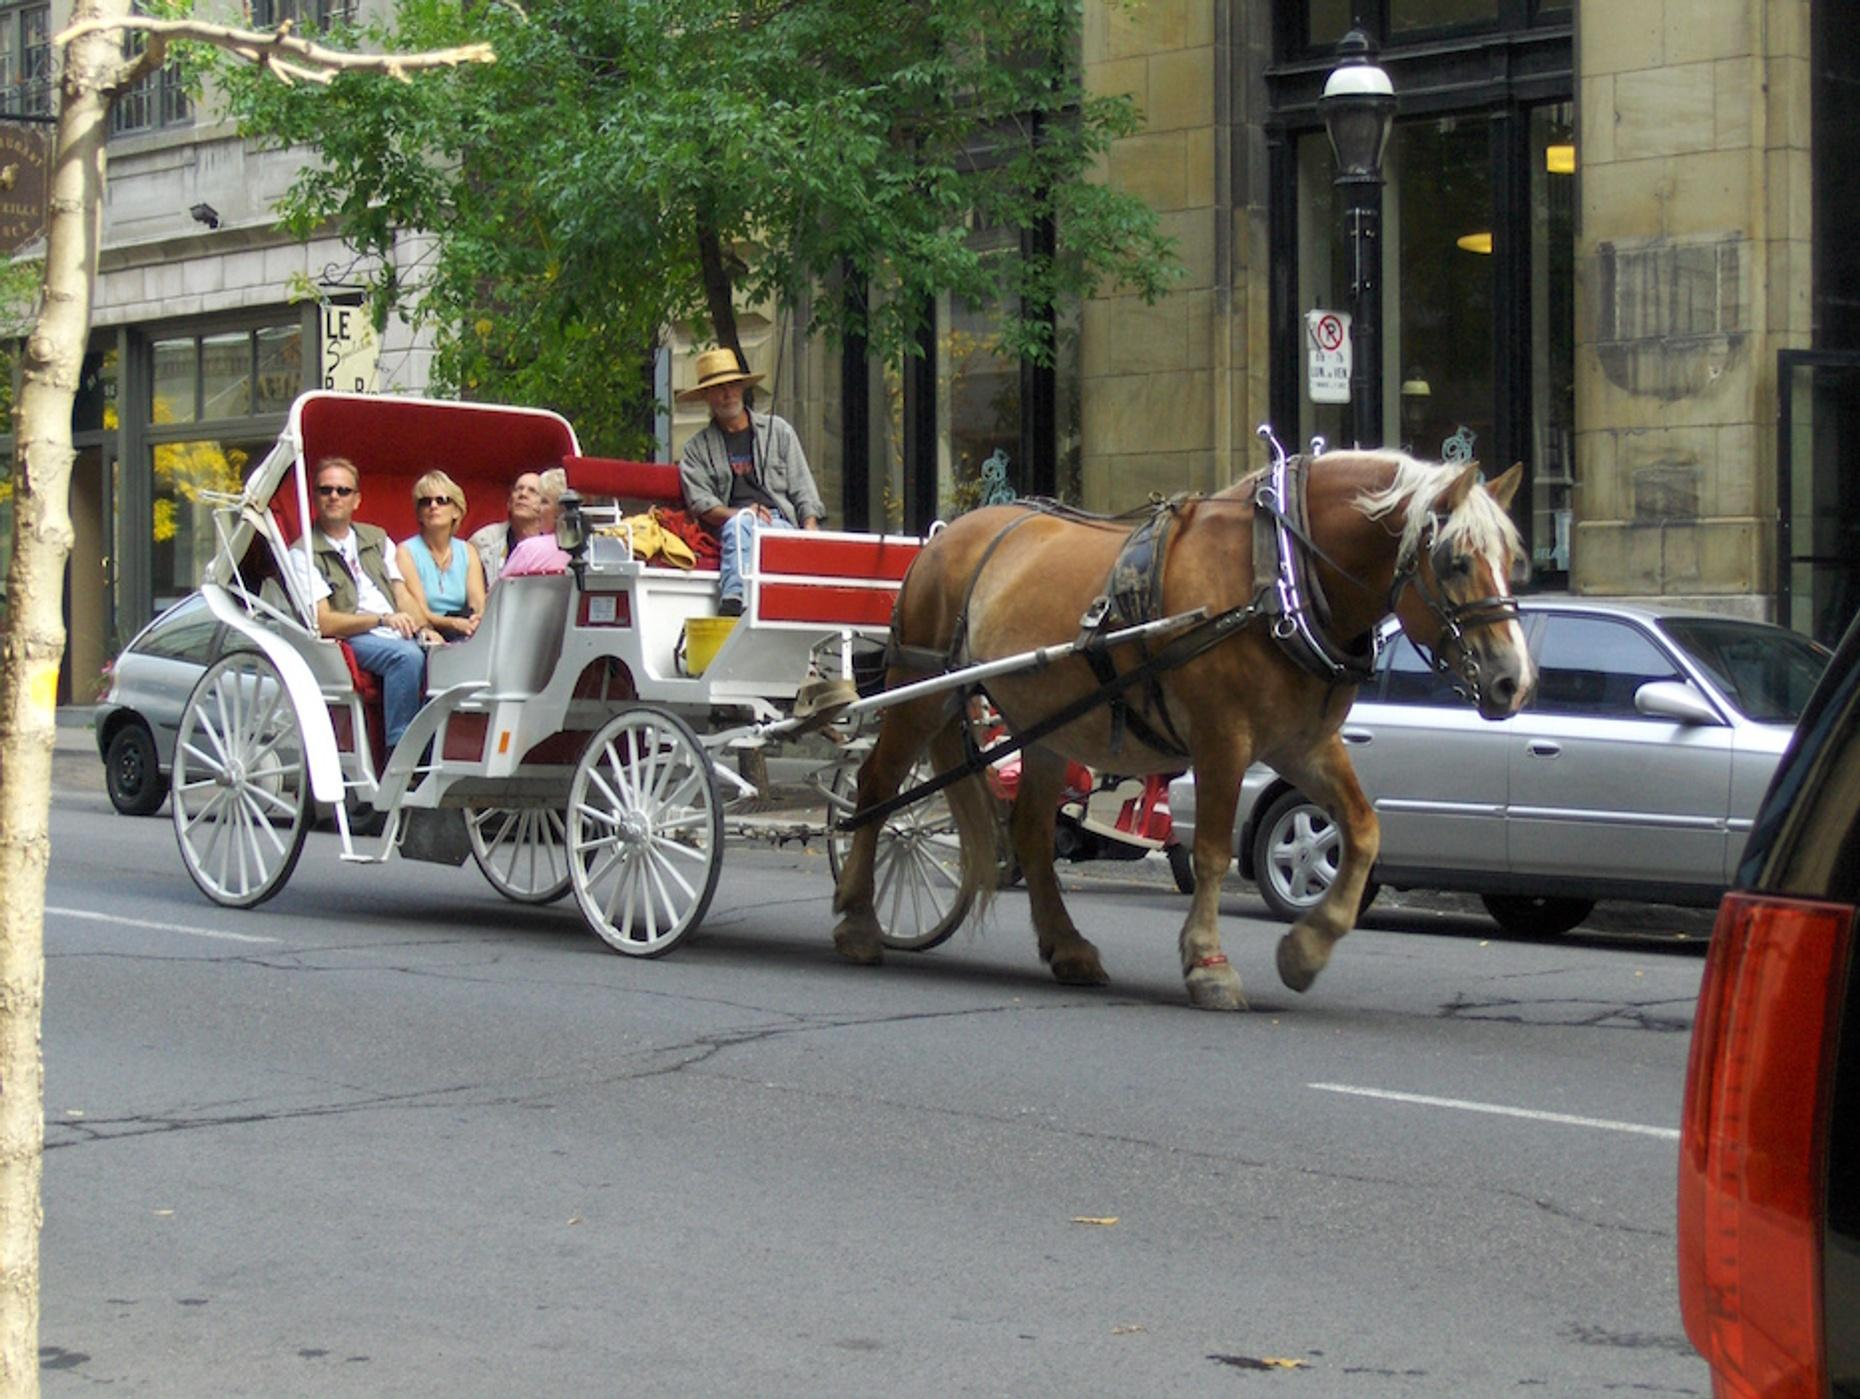 Six-Passenger Limo Carriage Ride in Dallas